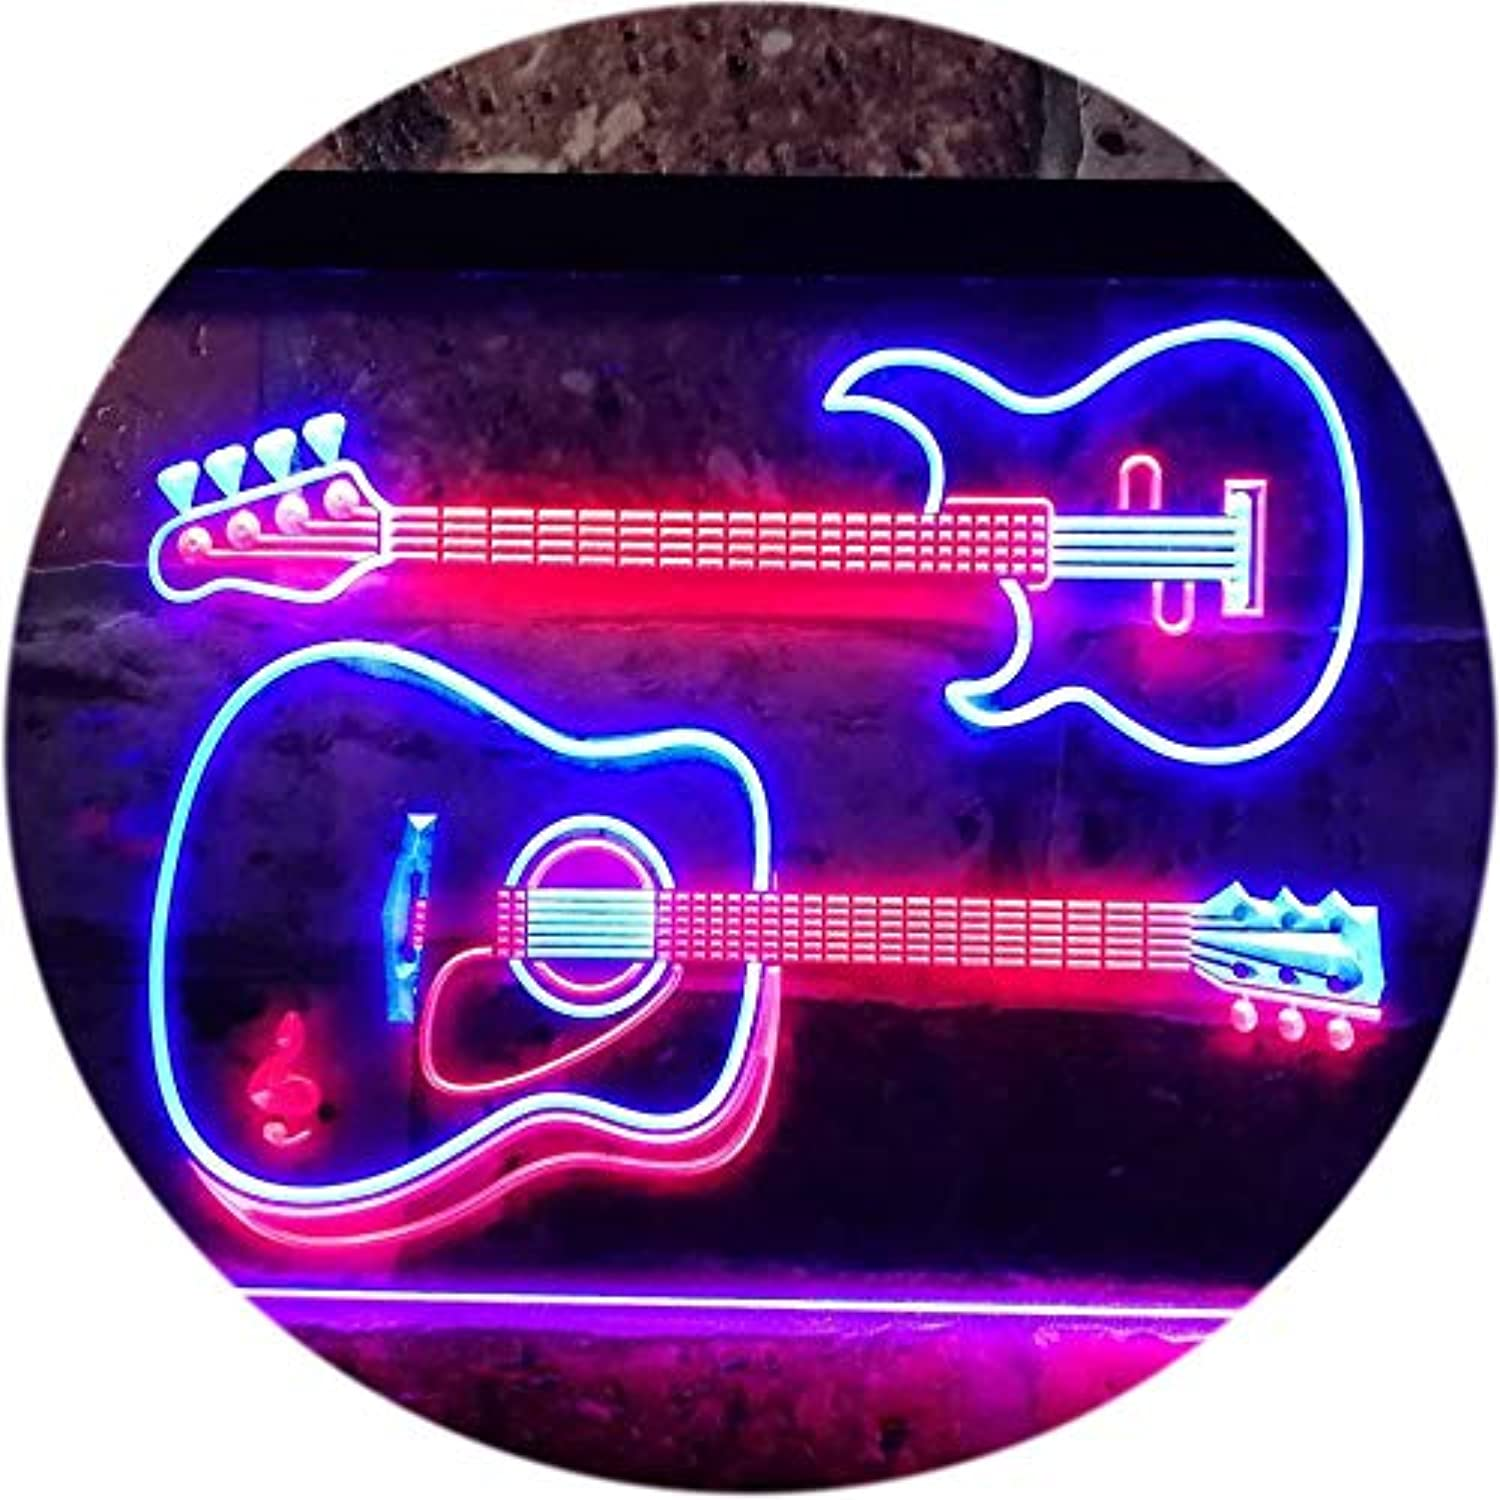 ADVPRO Guitar Electronic Acoustic Music Room Dual Farbe LED Barlicht Neonlicht Lichtwerbung Neon Sign rot & Blau 400mm x 300mm st6s43-m0014-rb